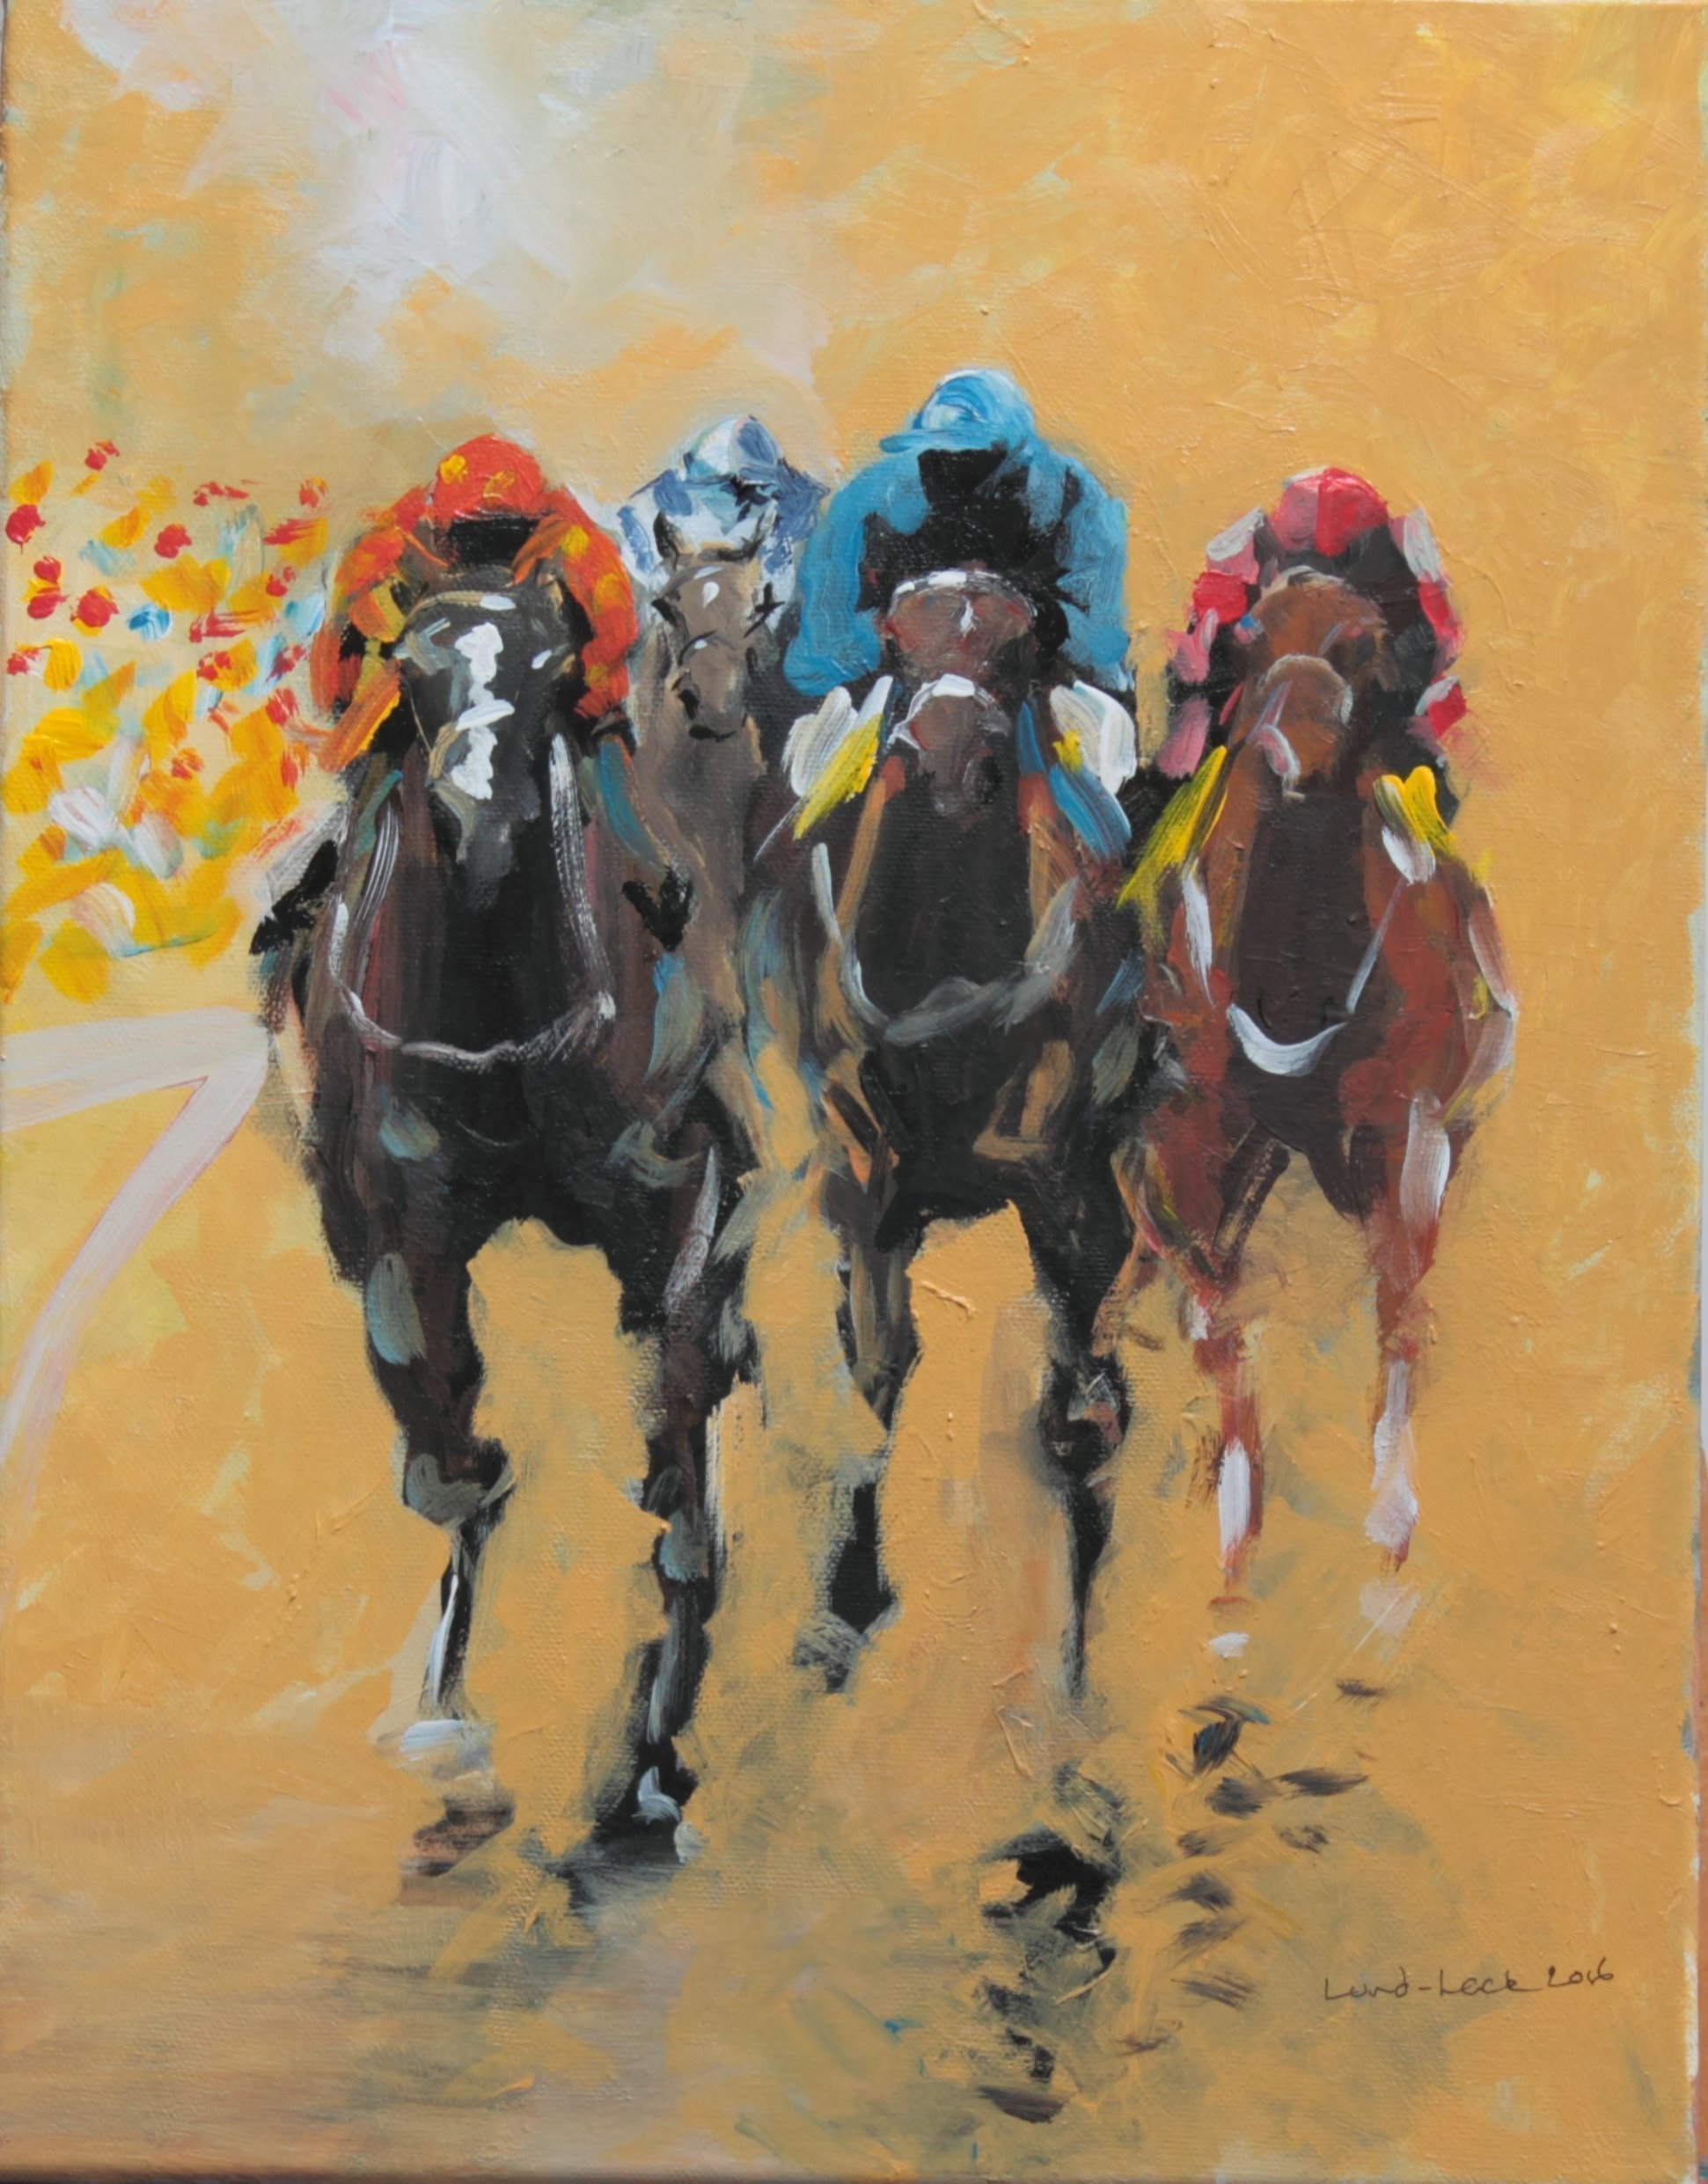 Tom Lund-lack: 'Racing Colours', 2016 Acrylic Painting, Equine. This very contemporary painting was completed very quickly about 4 hours the aim being to use simple shapes combined together to make a figurative image.  The subject matter - horse racing becomes obvious the further away from the painting one gets.  The energy I put into this piece I hope reflects ...